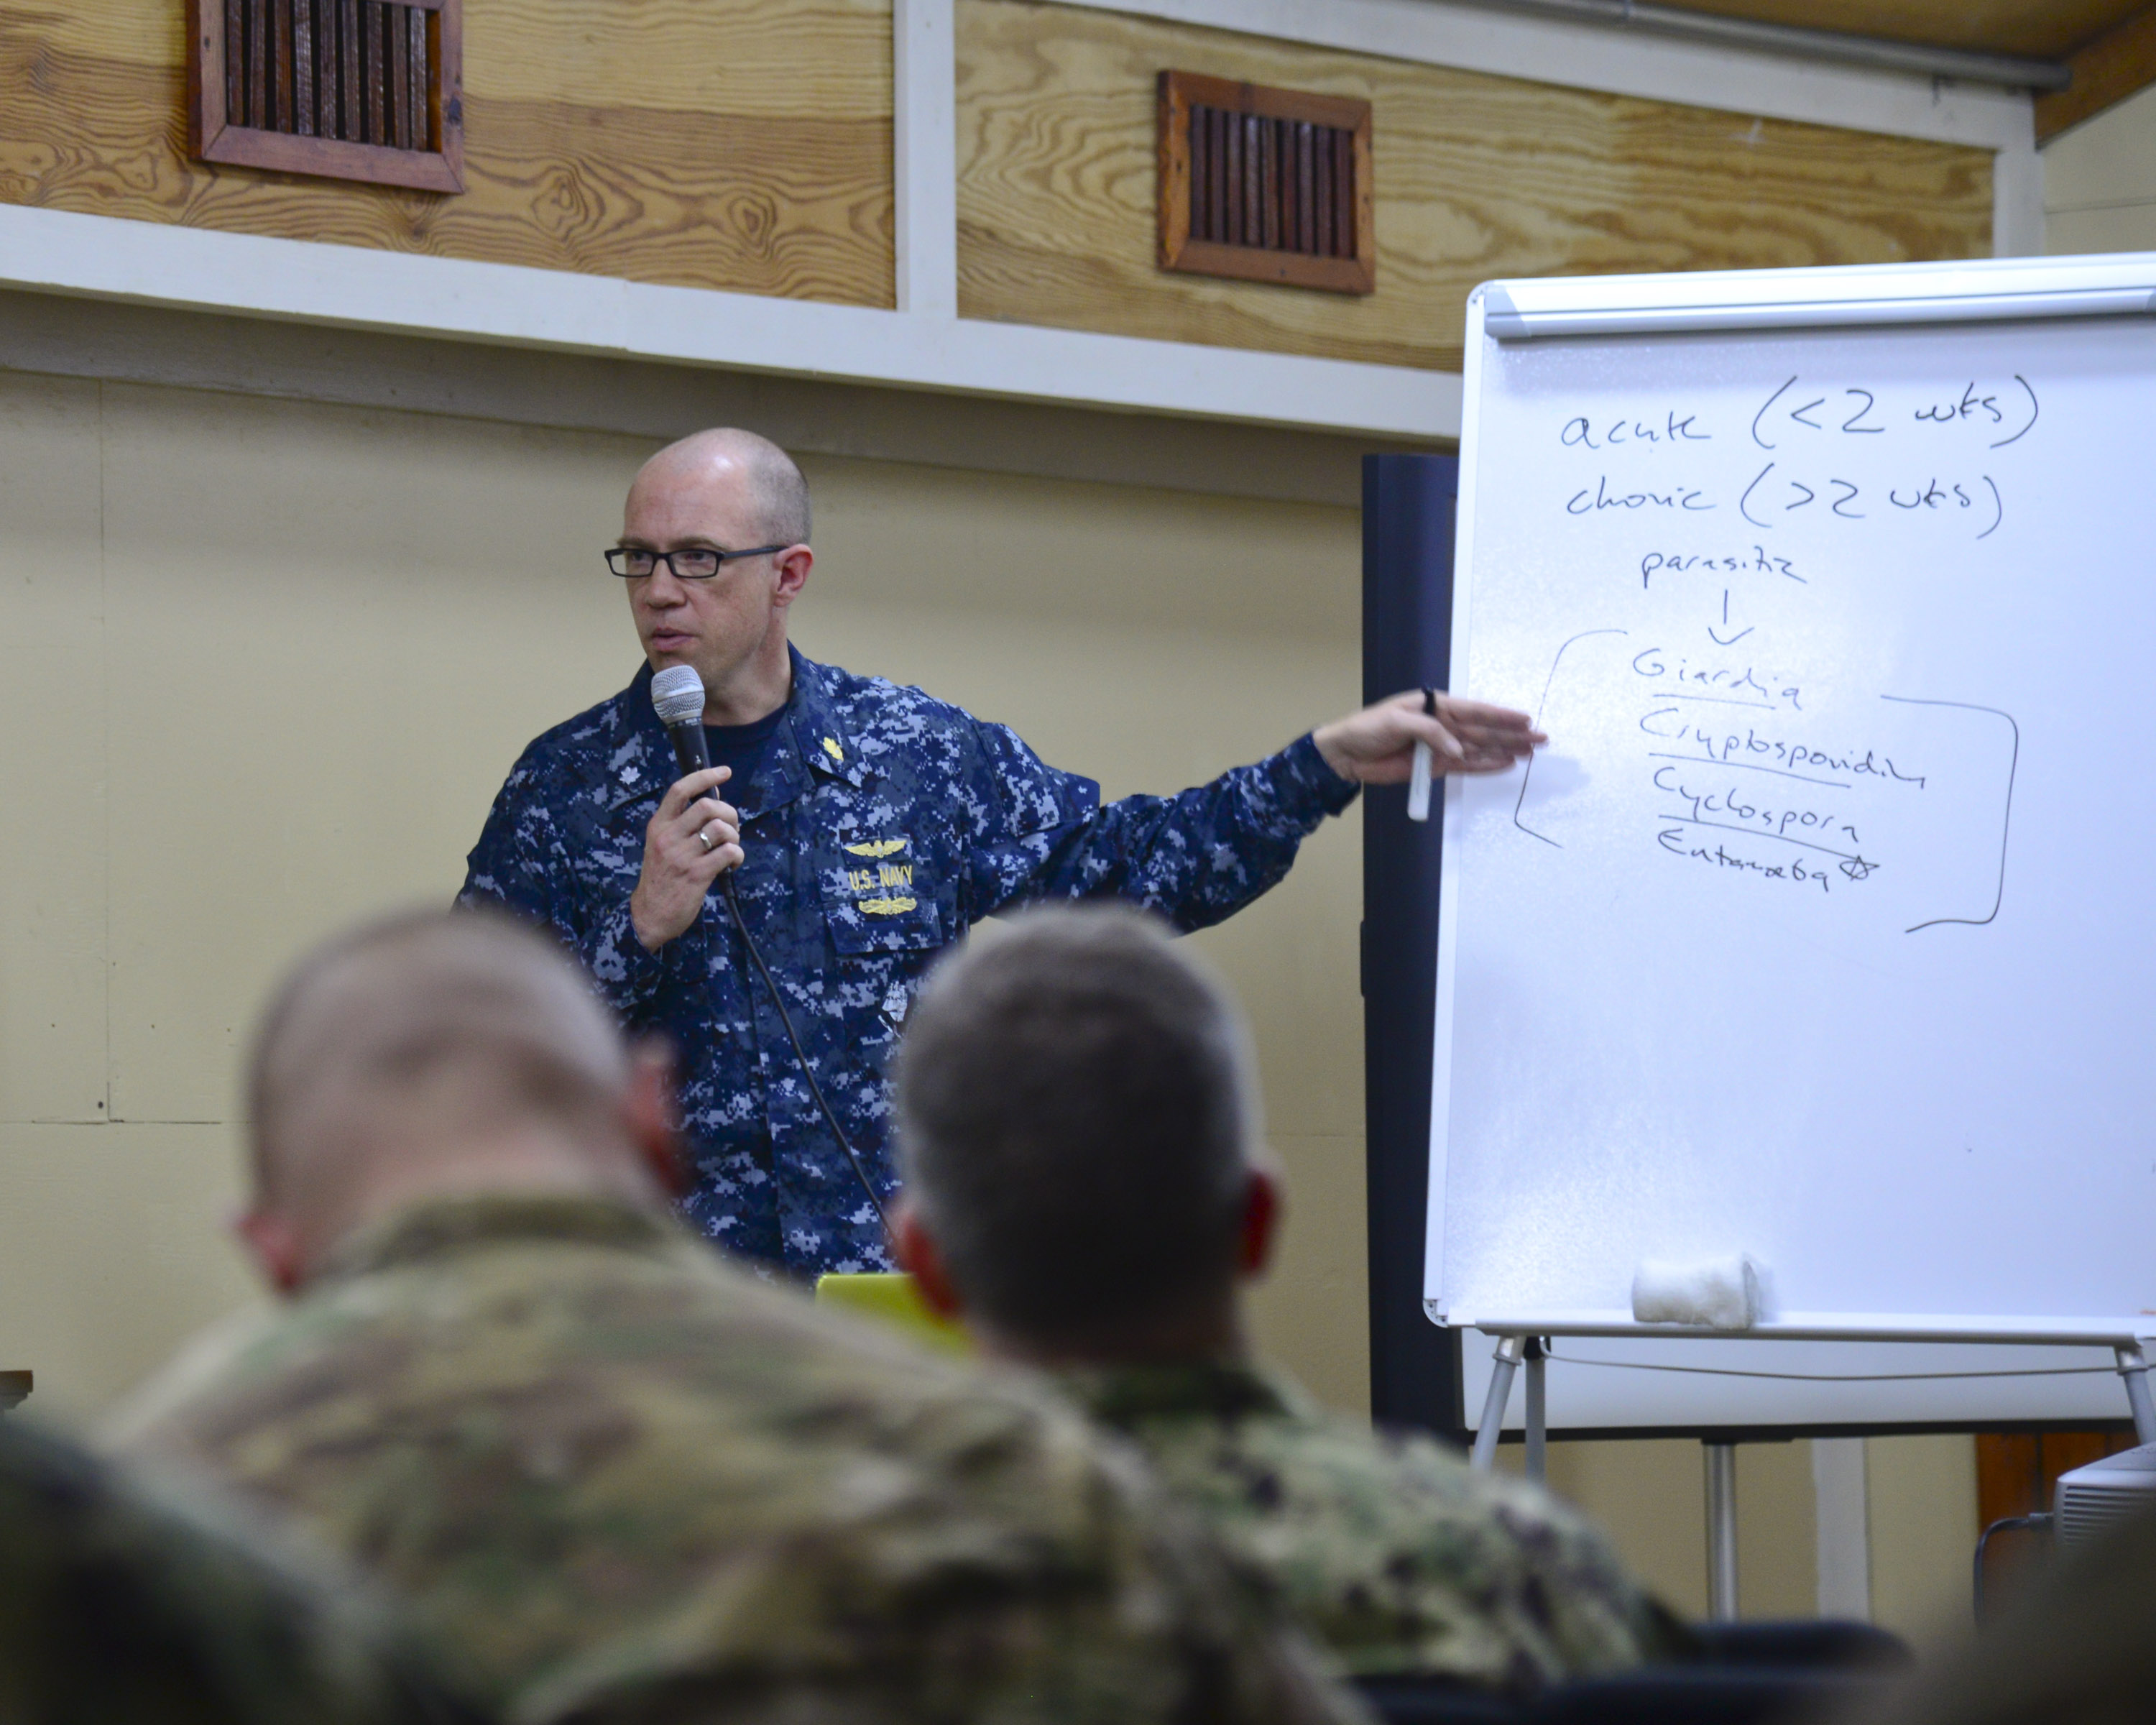 U.S. Navy Commander Ryan Maves, physician of infectious diseases, teaches medical professionals about illnesses during the Military Tropical Medicine seminar May 11, 2016 at Camp Lemonnier, Djibouti. Medical specialists from the U.S., France, Germany, Italy and Djibouti attended the seminar to learn about treating tropical illnesses and diseases and how they affect military personnel in a contingency environment.  (U.S. Air Force photo by Senior Airman Benjamin Raughton/Released)